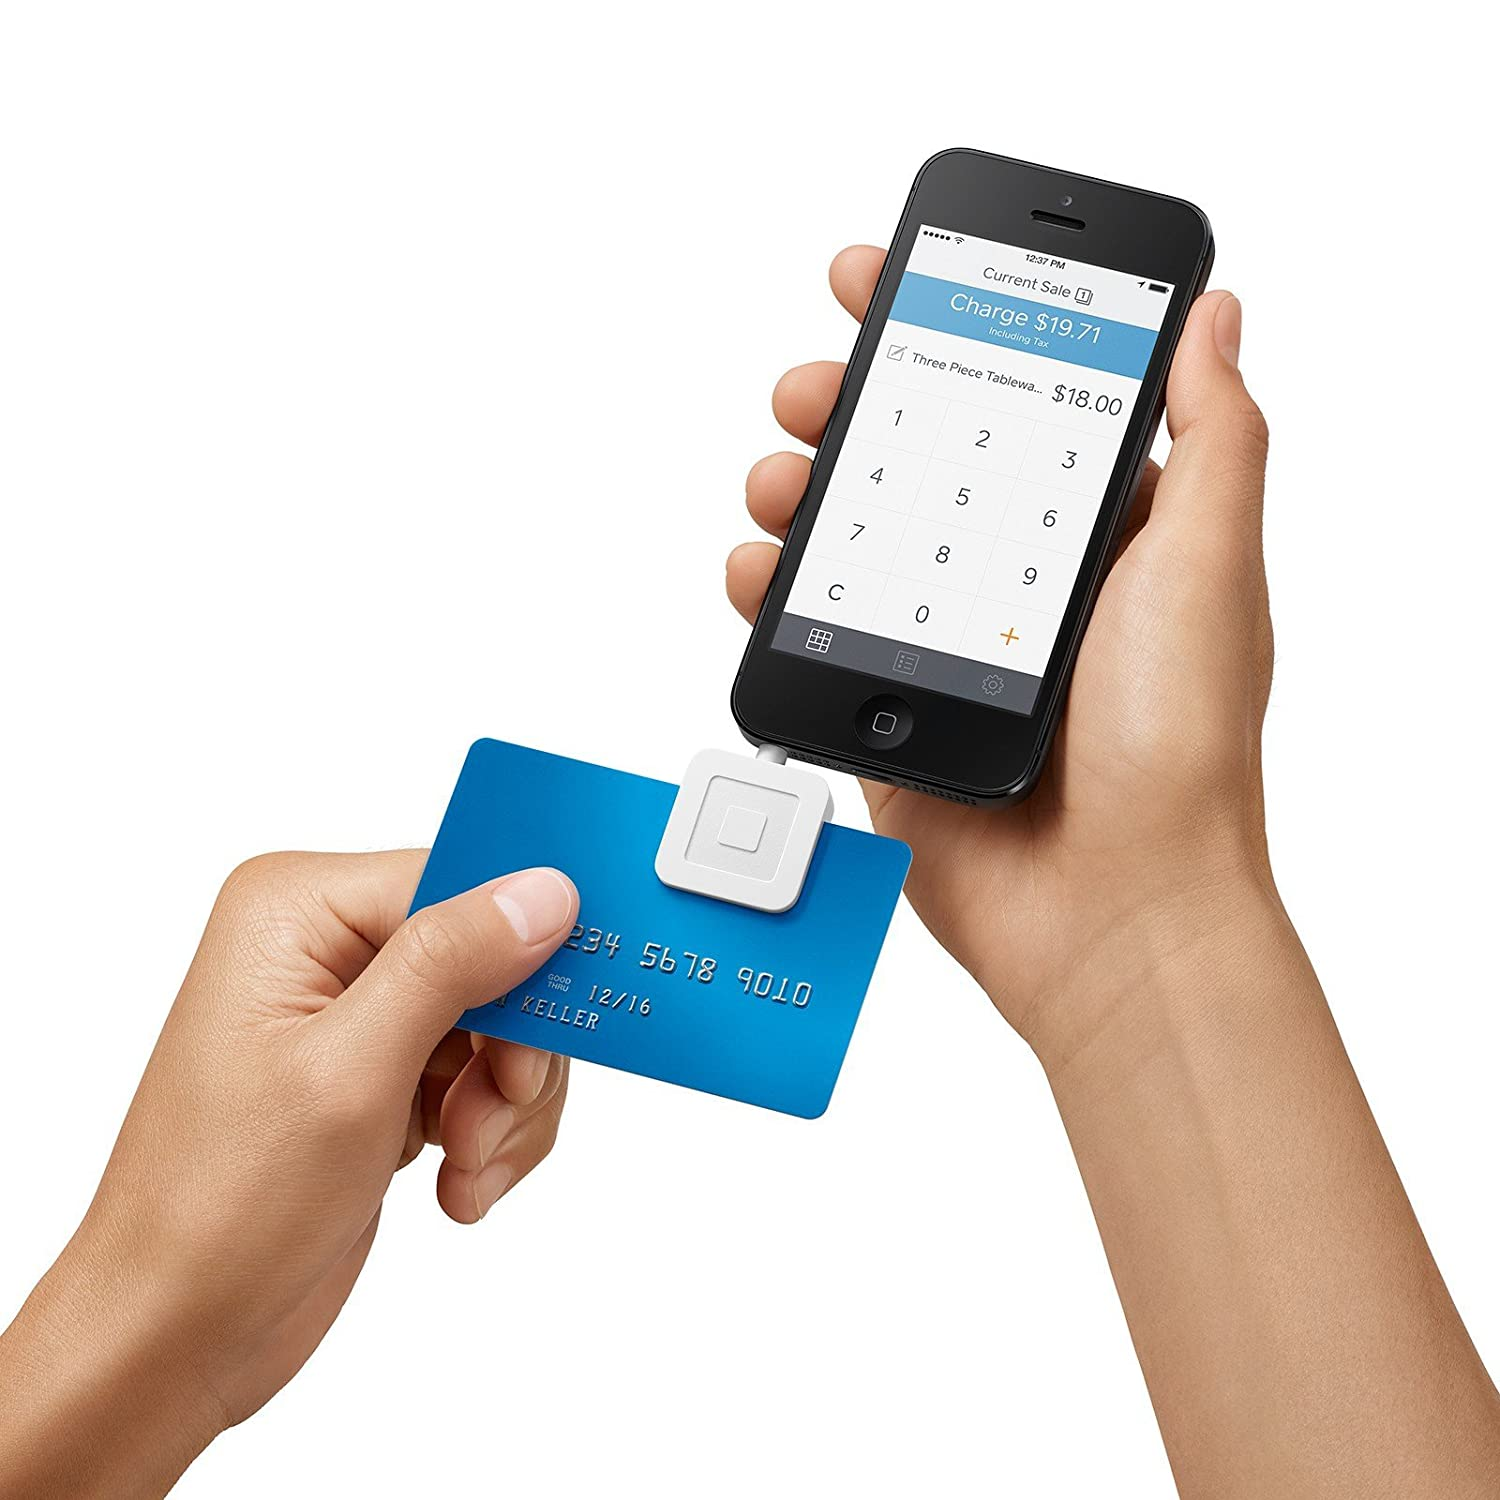 Phone Square App For Android Phone amazon com square credit card reader for iphone ipad and android cell phones accessories